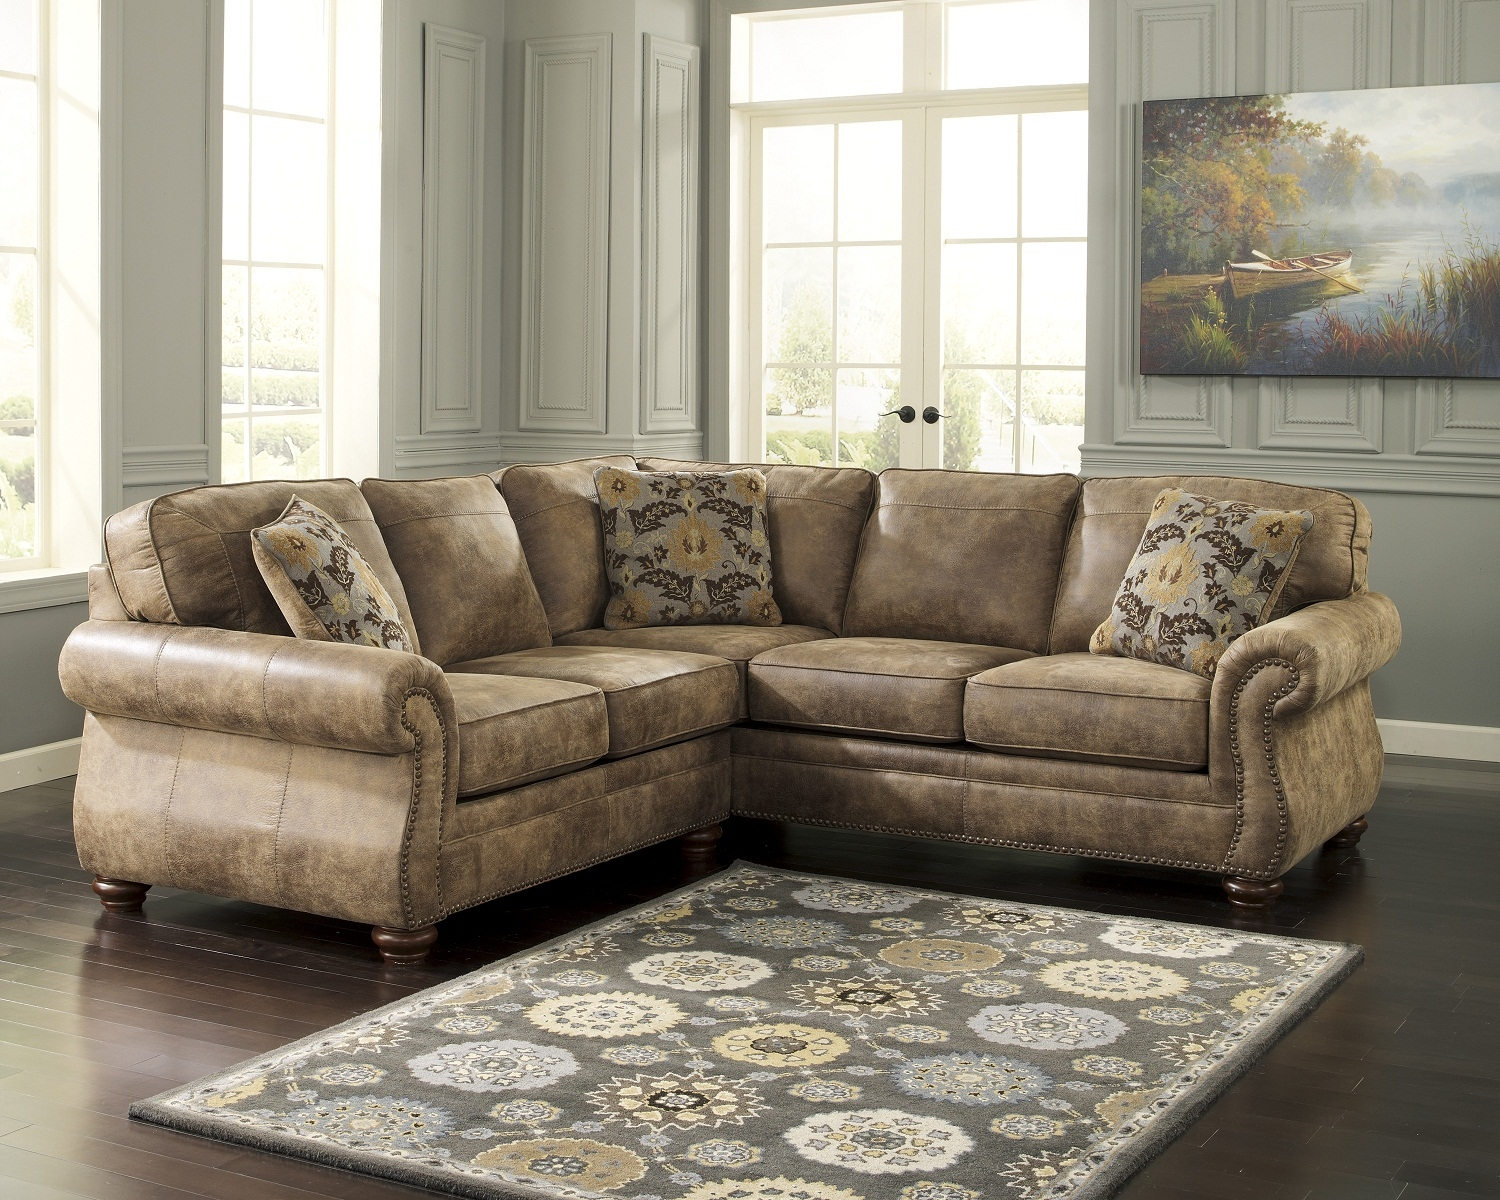 Overstock Sectional Sofas Roselawnlutheran Within Chenille Sectional Sofas (View 6 of 15)